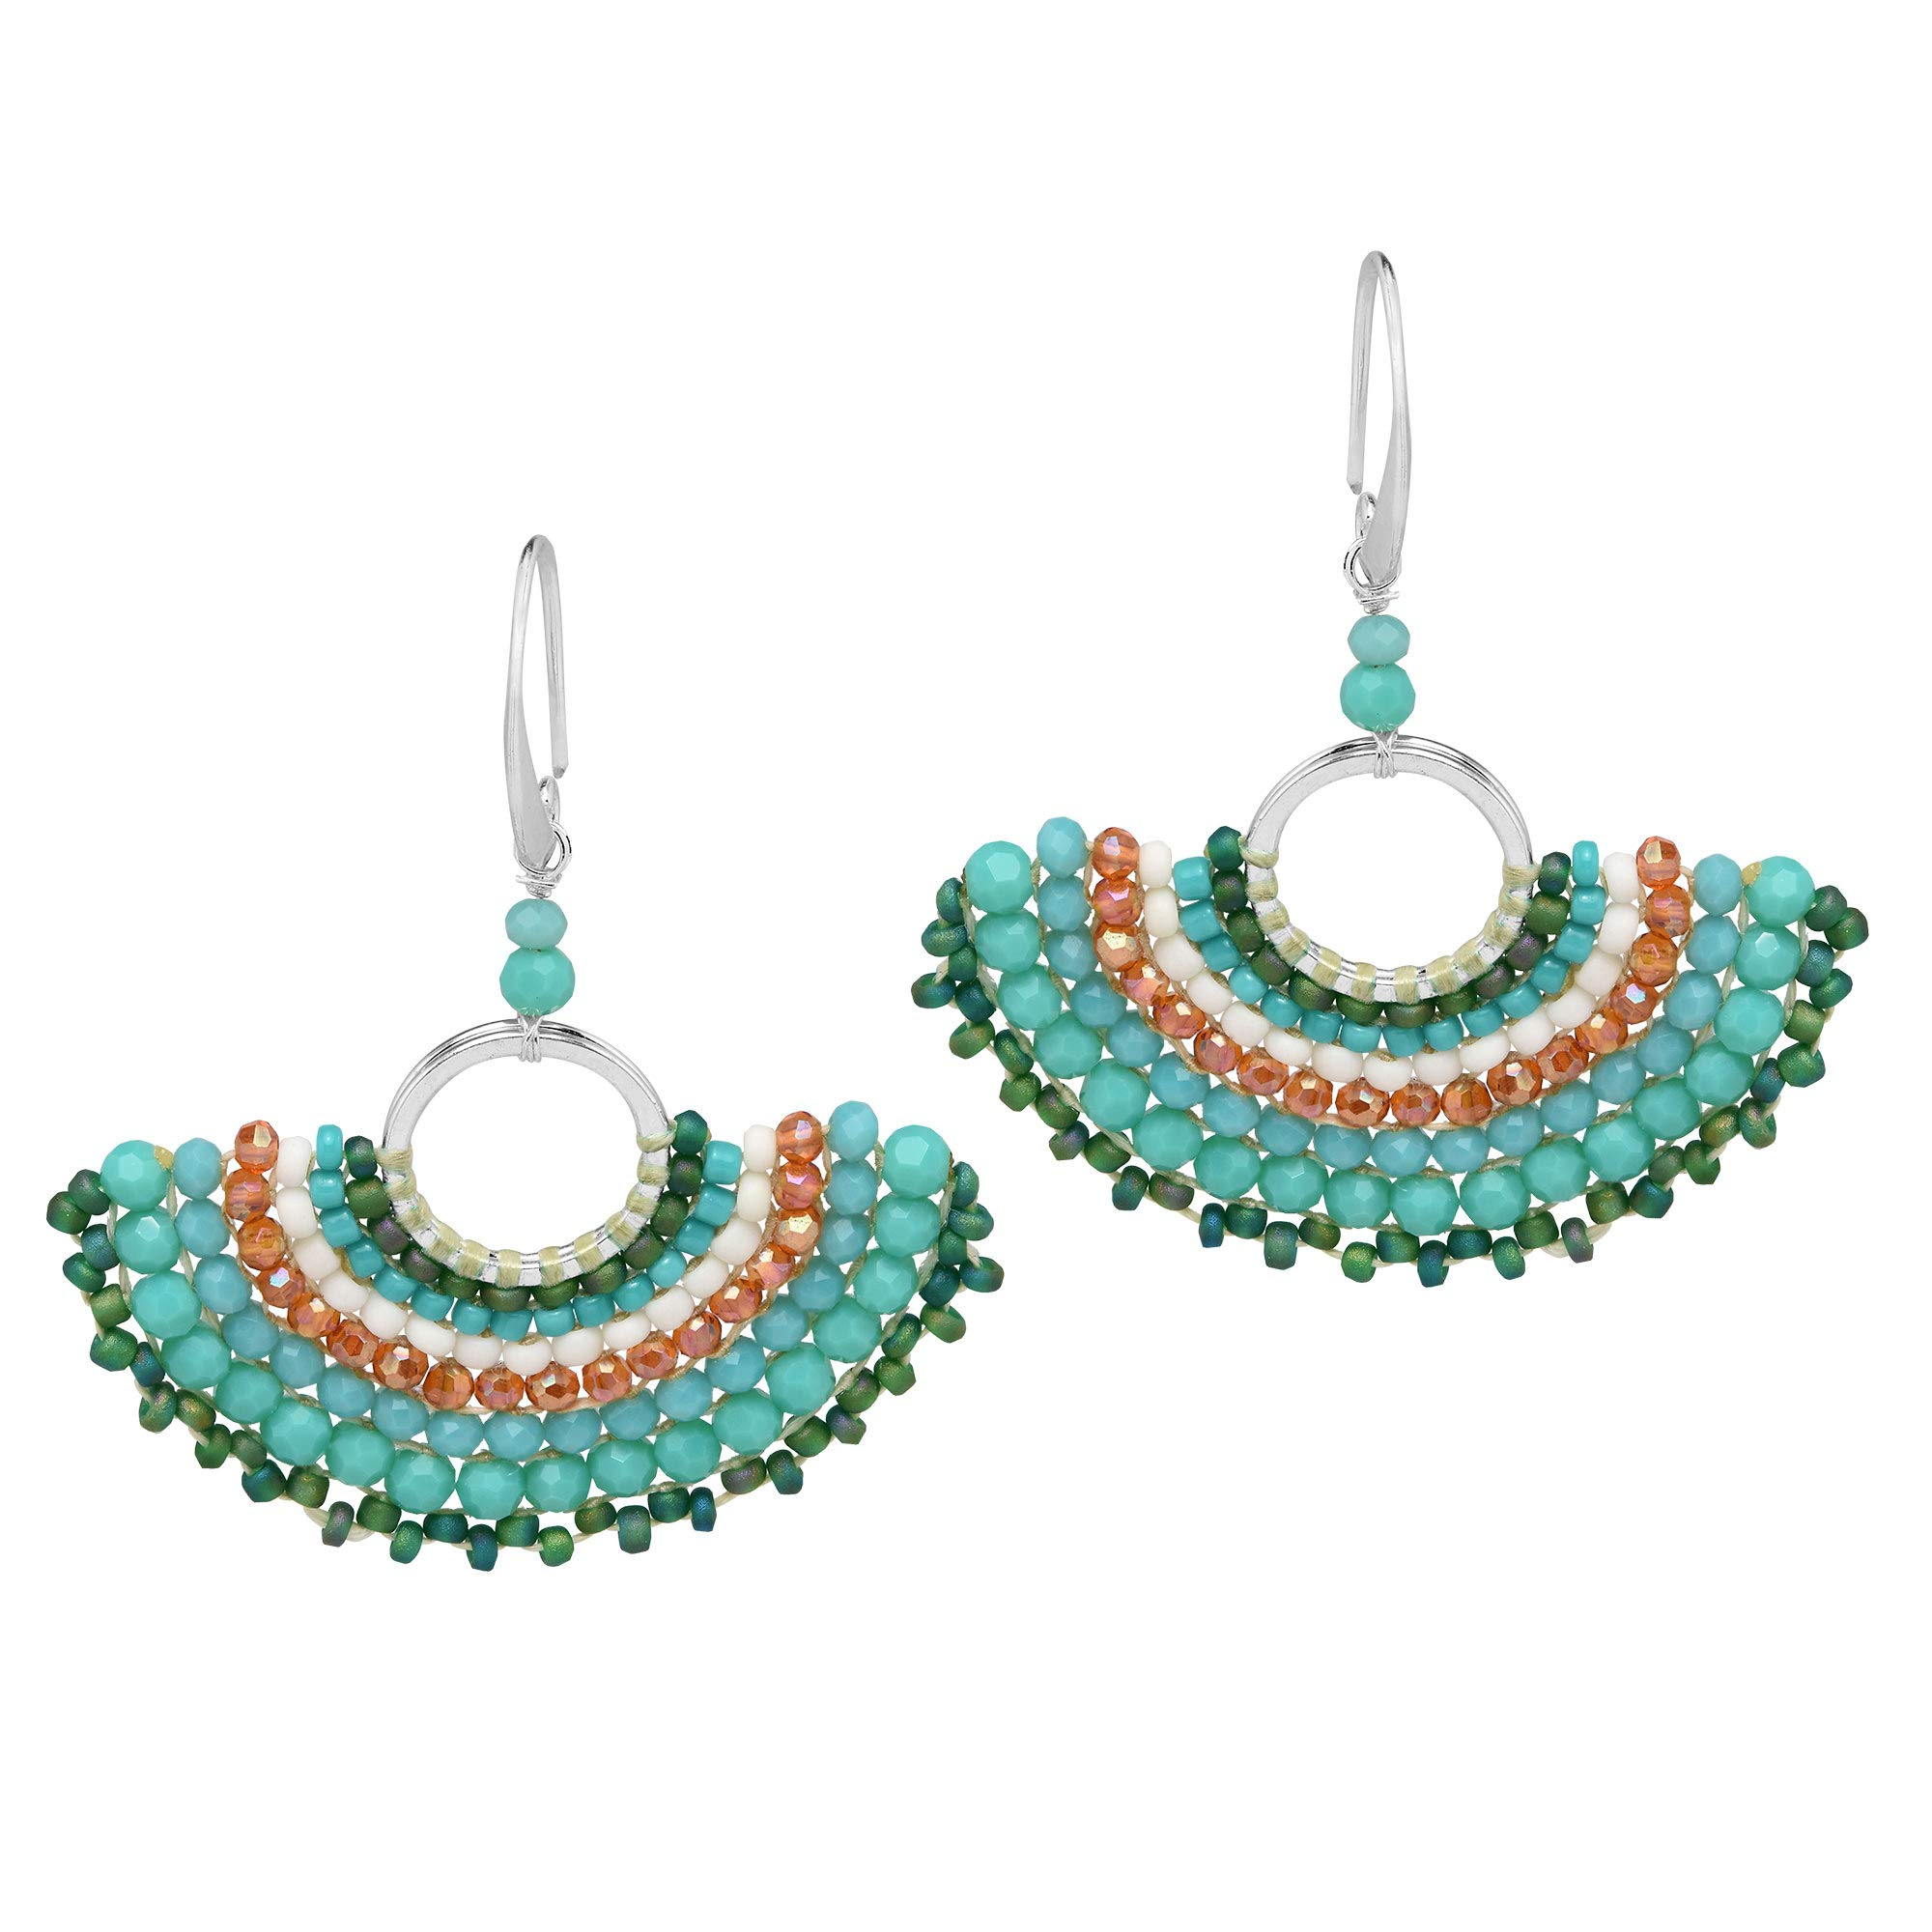 Chic Simulated Turquoise & Fashion Crystal & Fashion Bead Fan .925 Sterling Silver Dangle Earrings by AeraVida (Image #1)